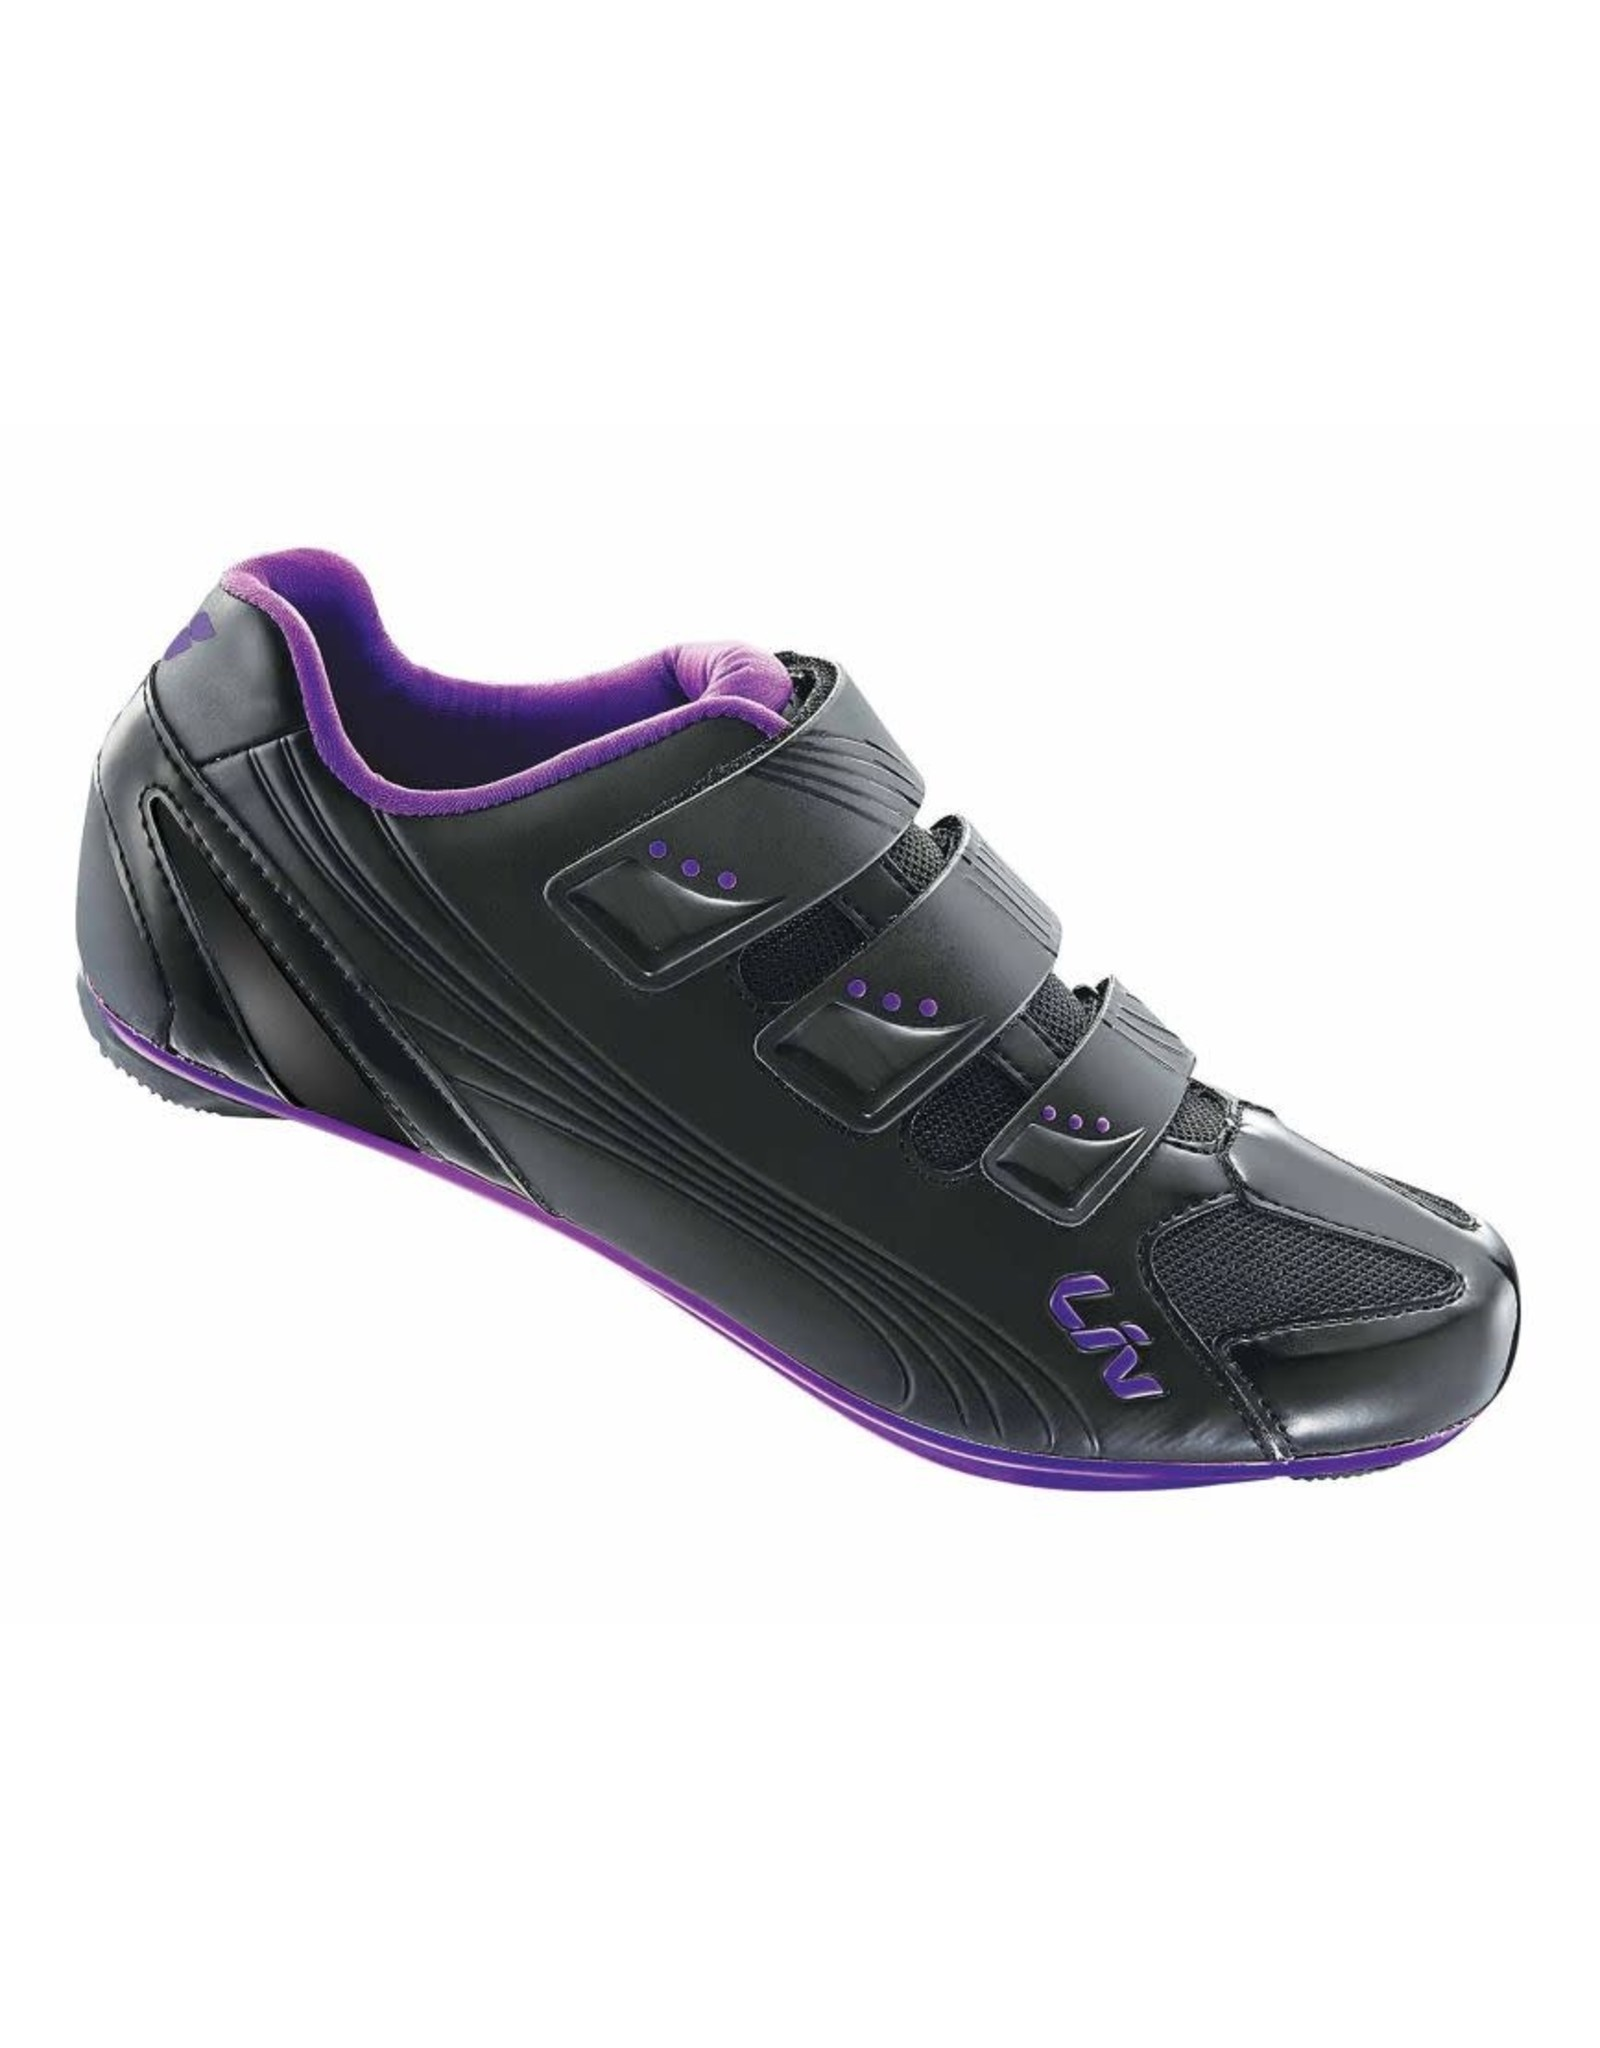 Liv Women's LIV REGALO Shoe BLK/PURPLE 38 (Reg $129)